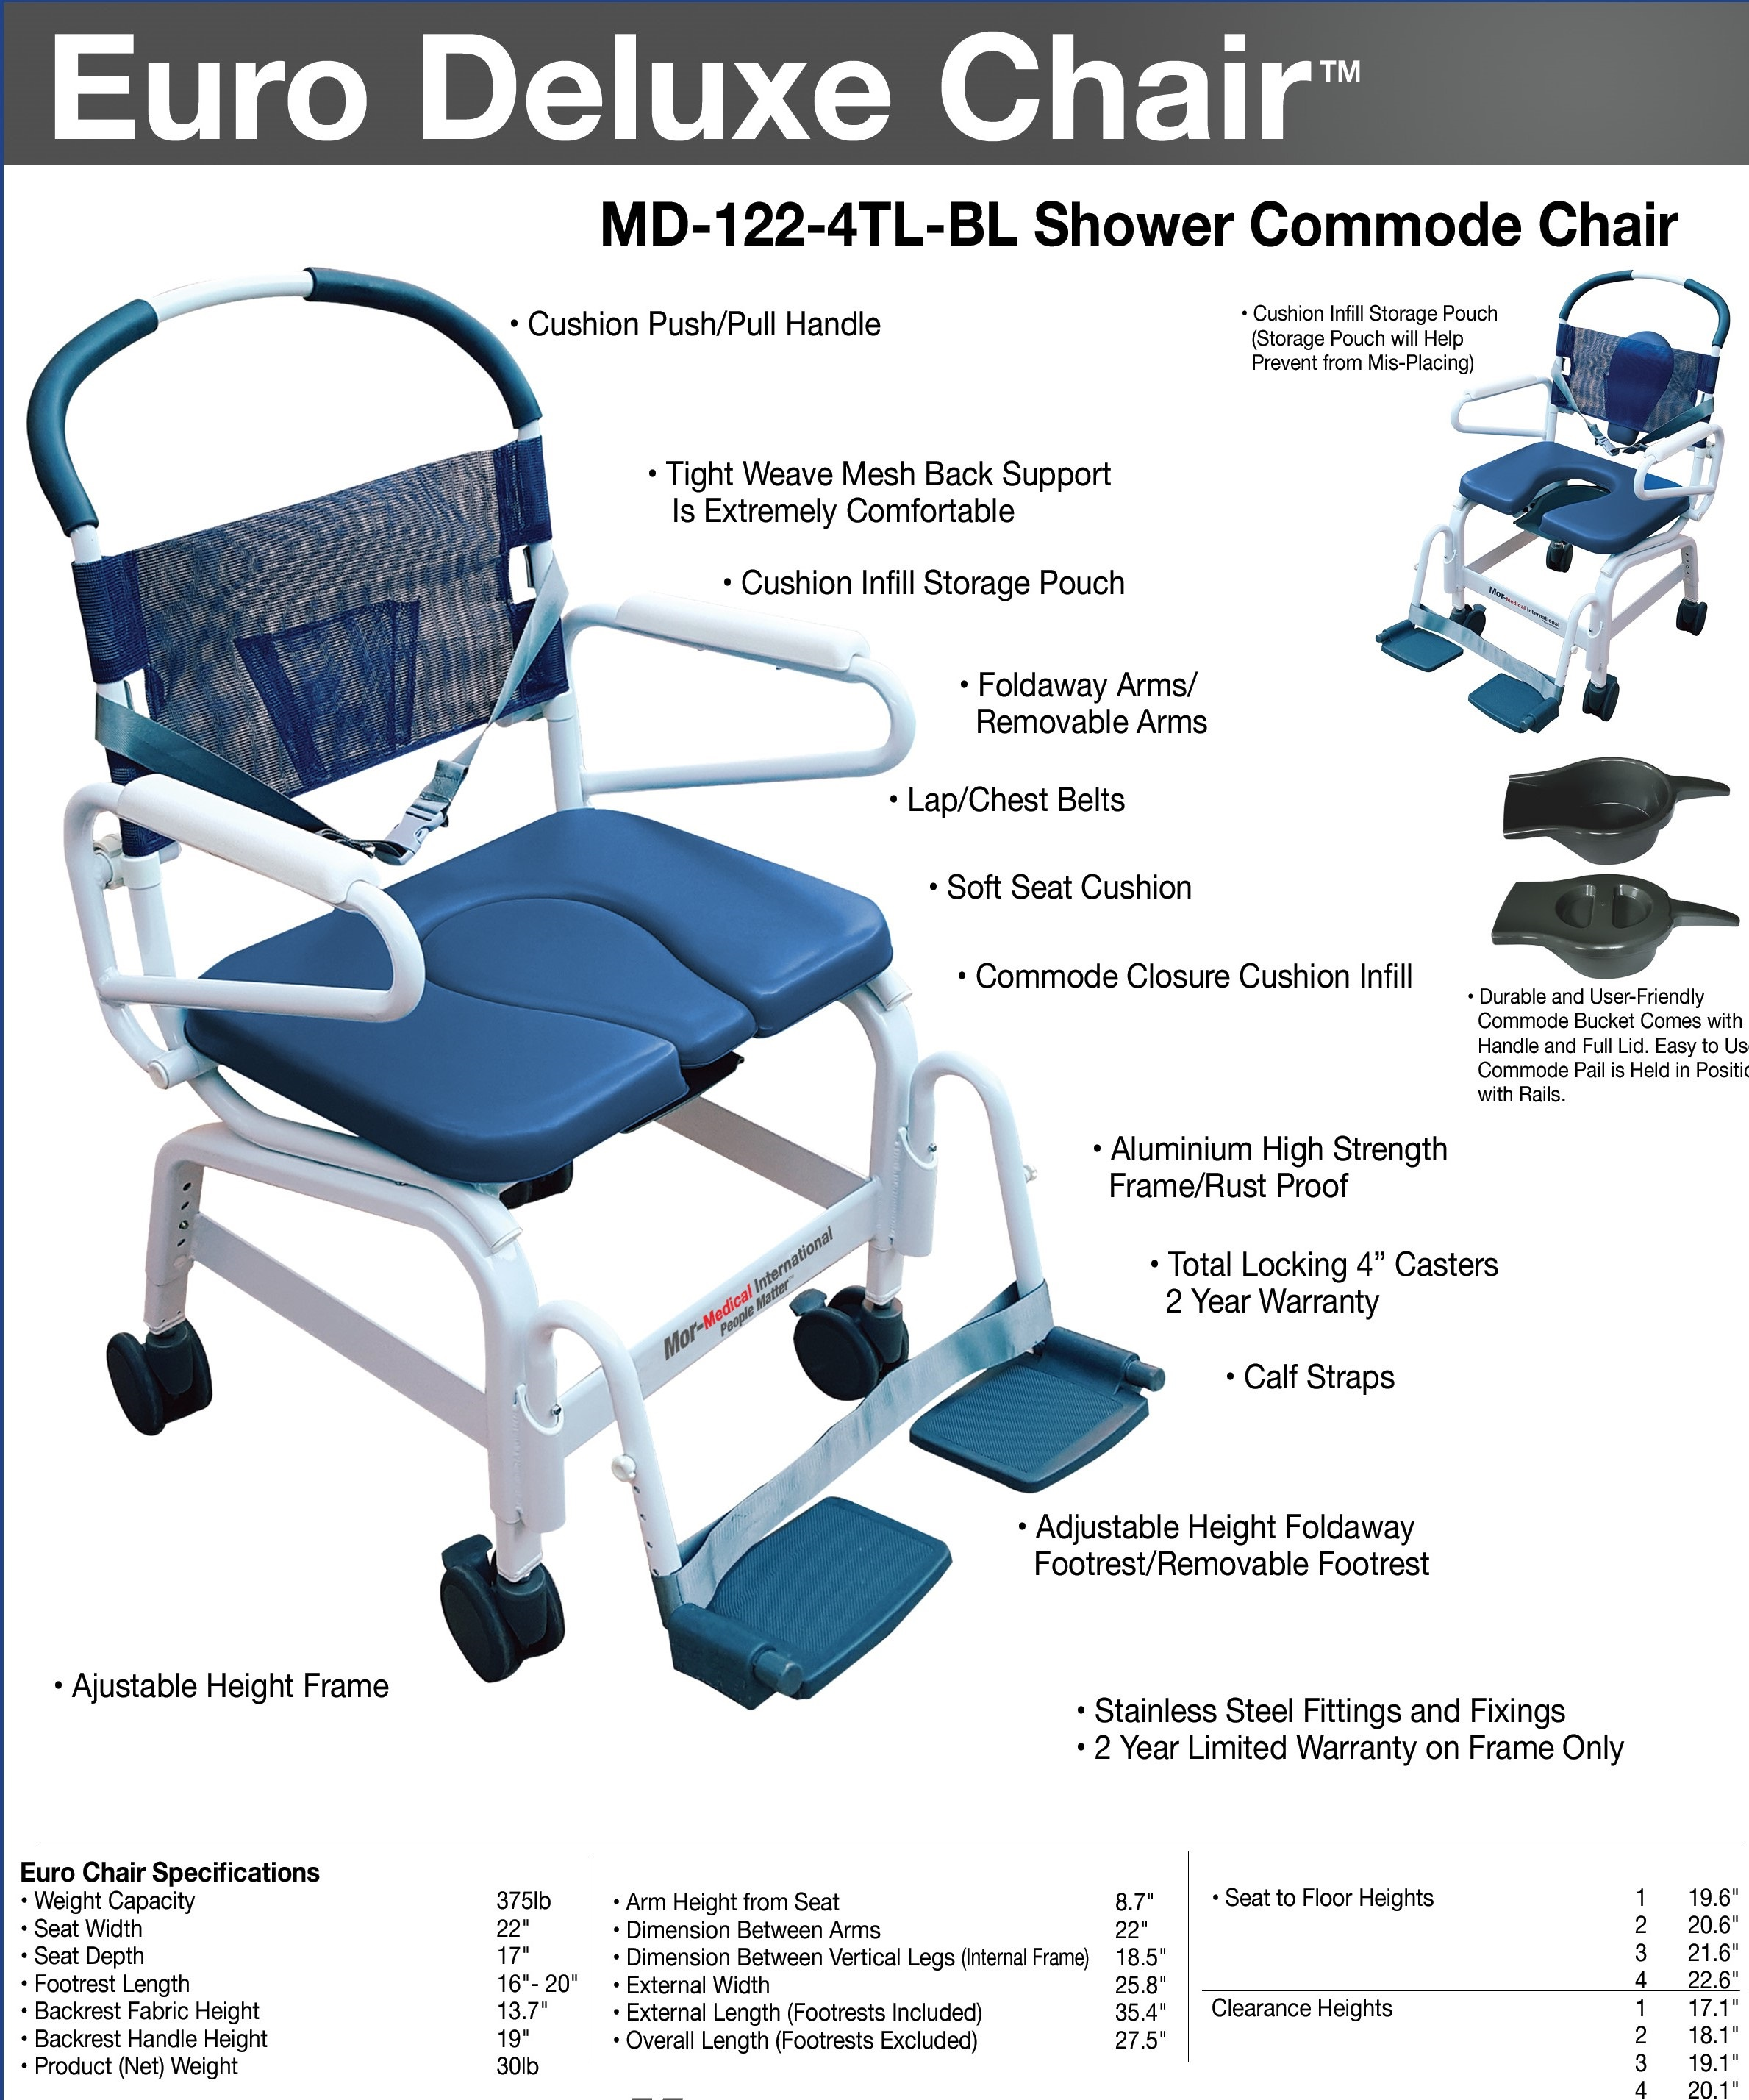 Handicap shower chairs pvc reclining shower commode chairs - Euro Deluxe Shower Chair122 4tl 2 Jpg